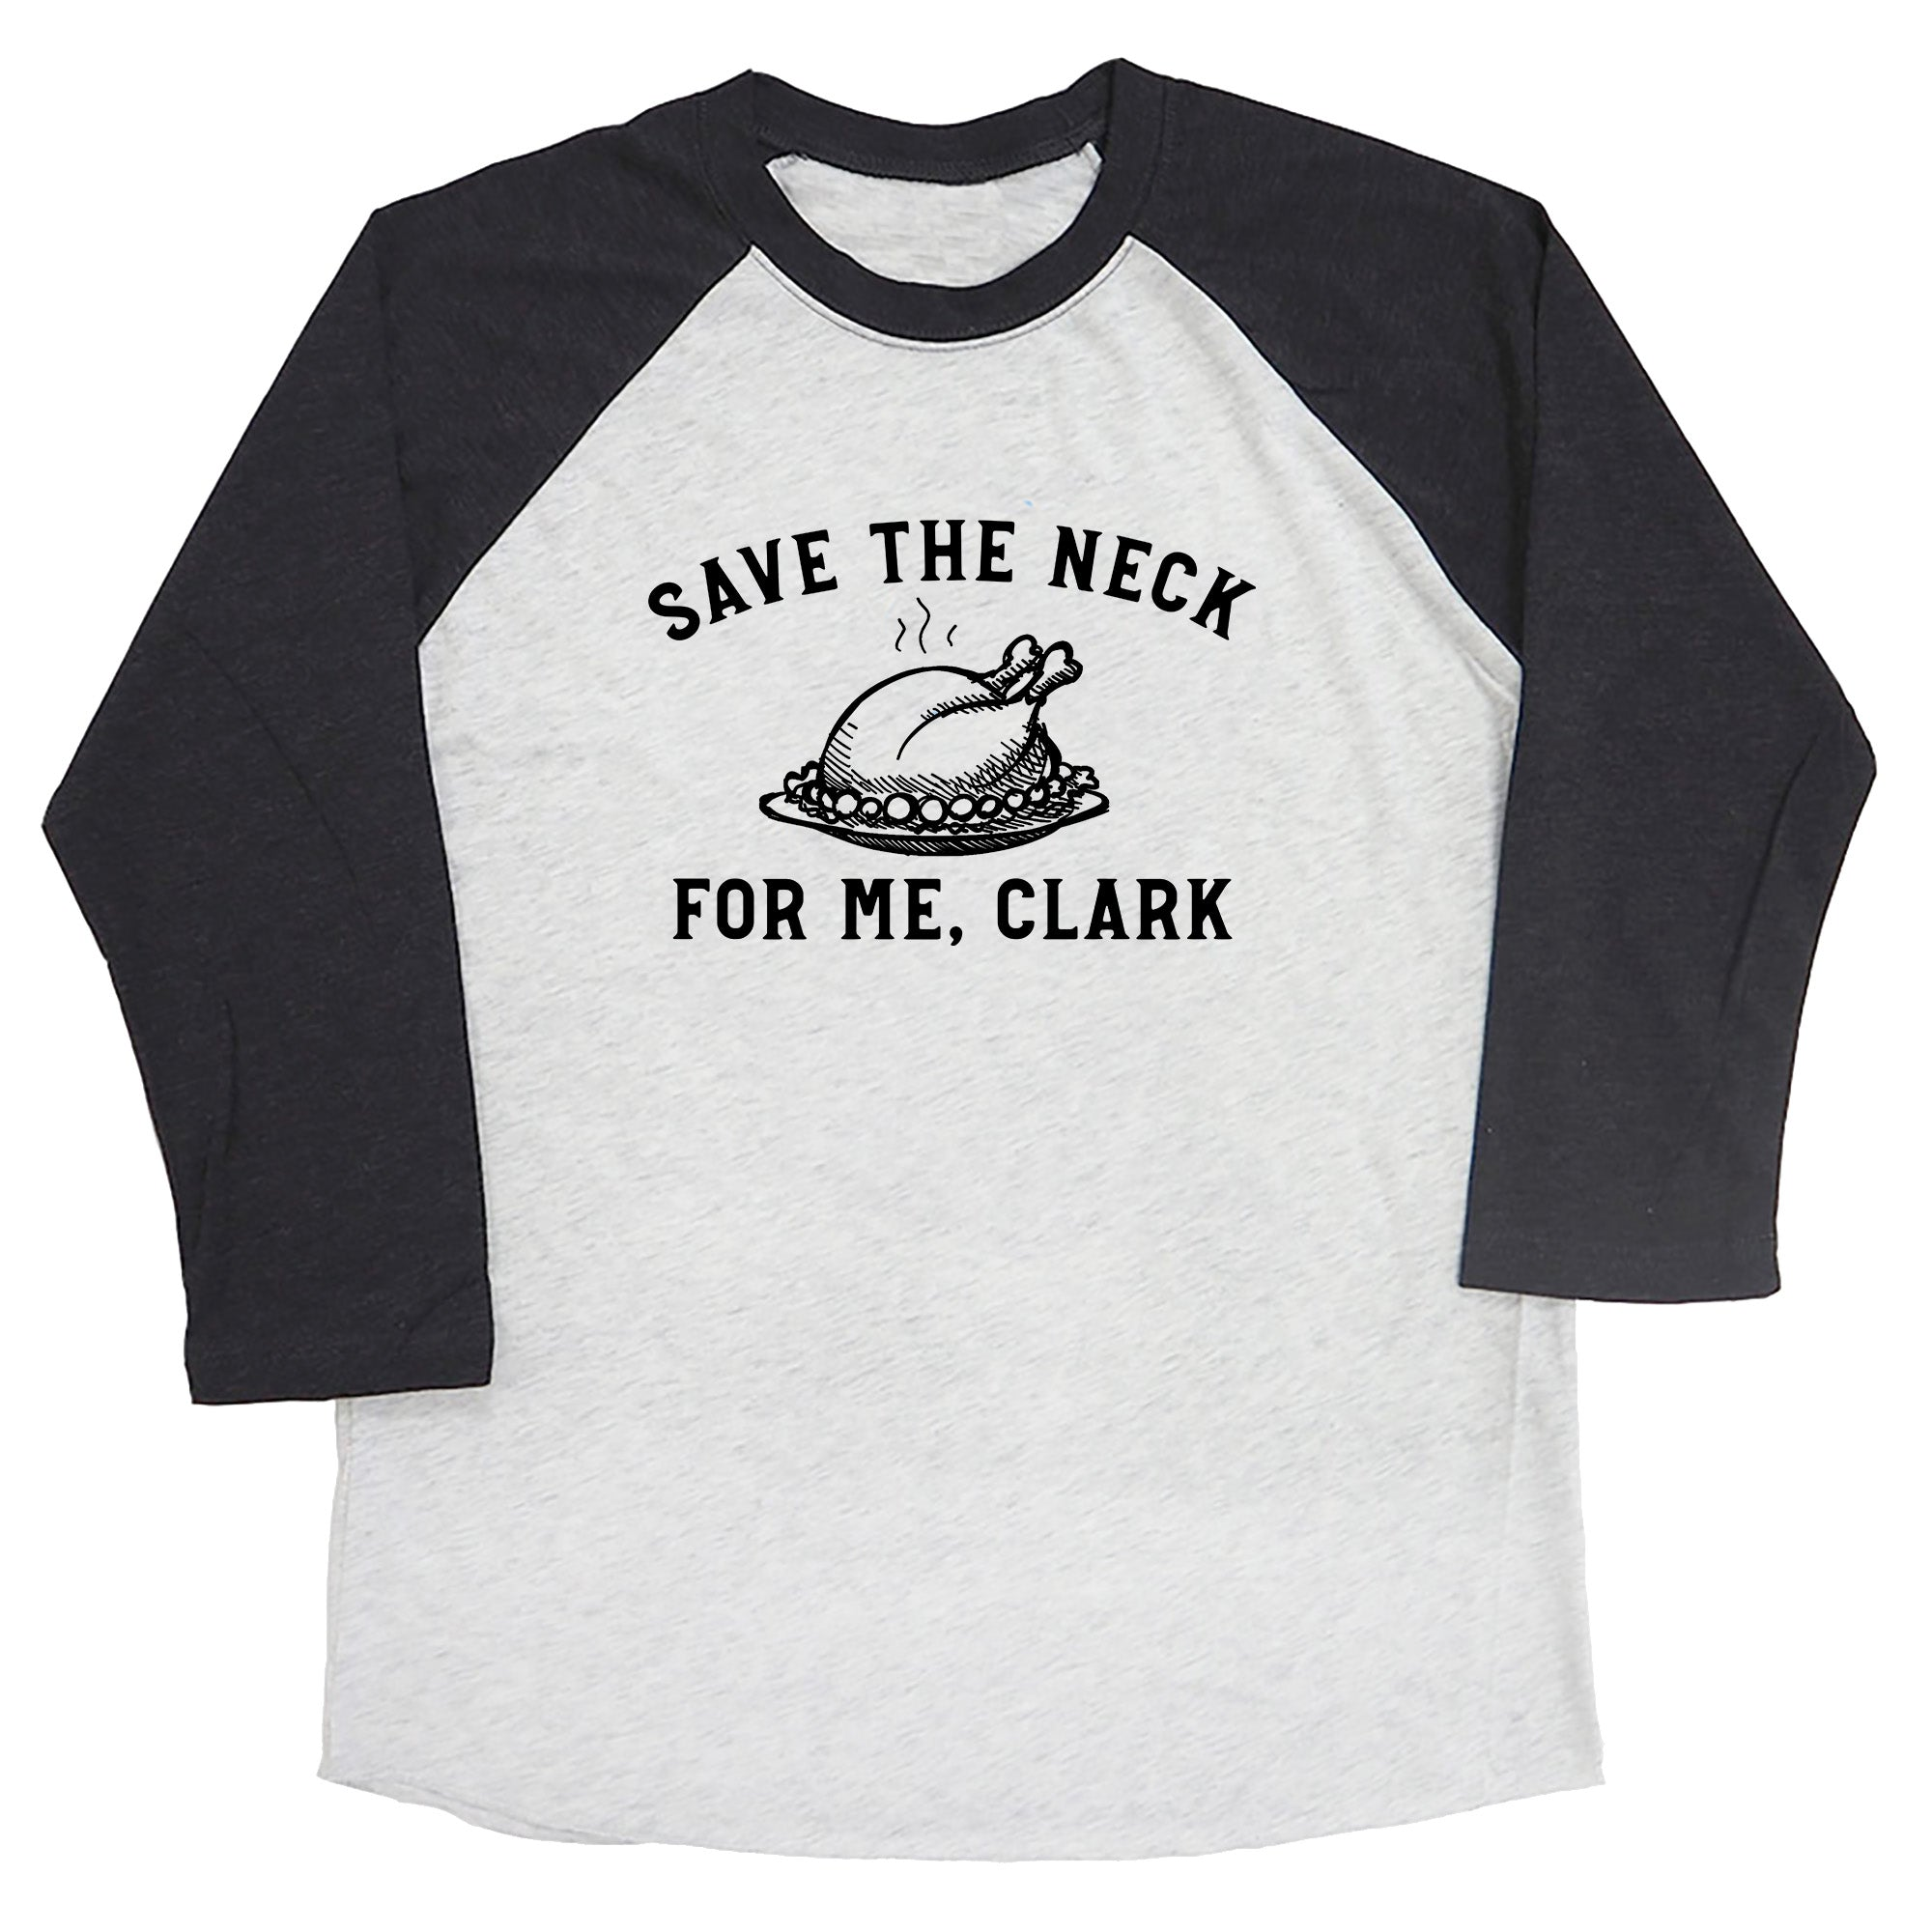 Save The Neck For Me, Clark Raglan Tee